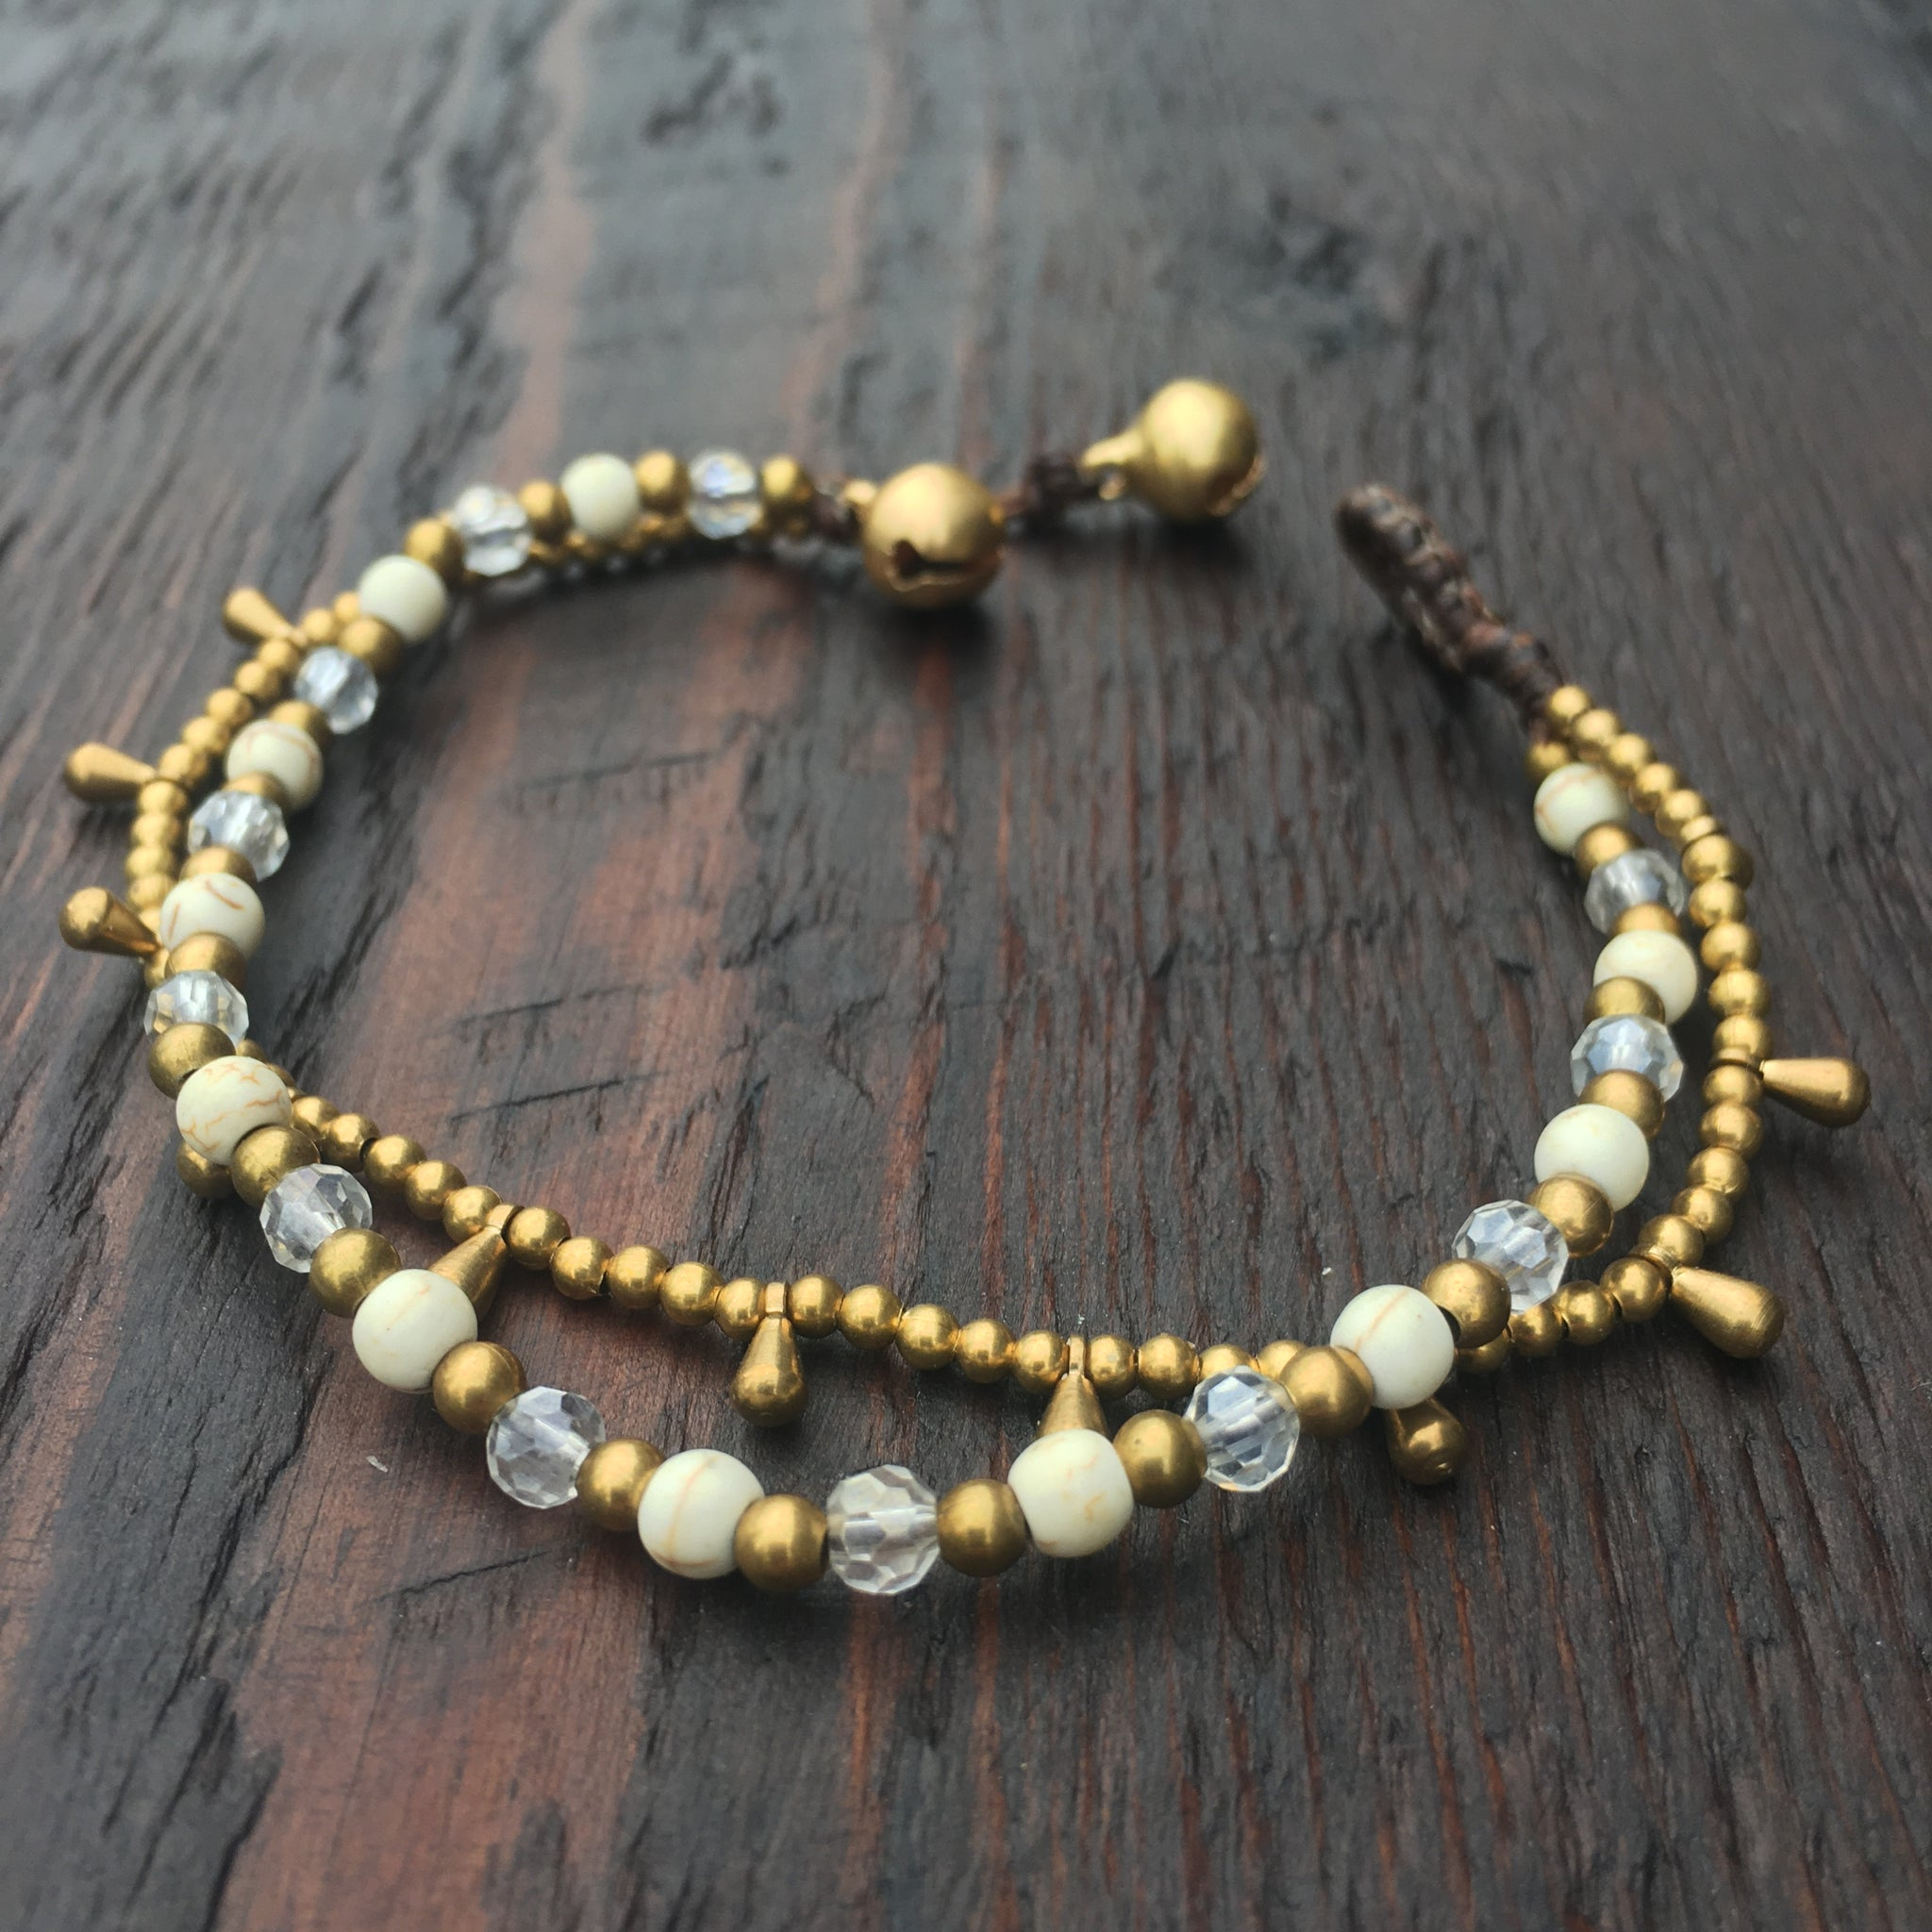 'Brass-Works' Bead Bracelet with Teardrops (Natural & Iridescent White)